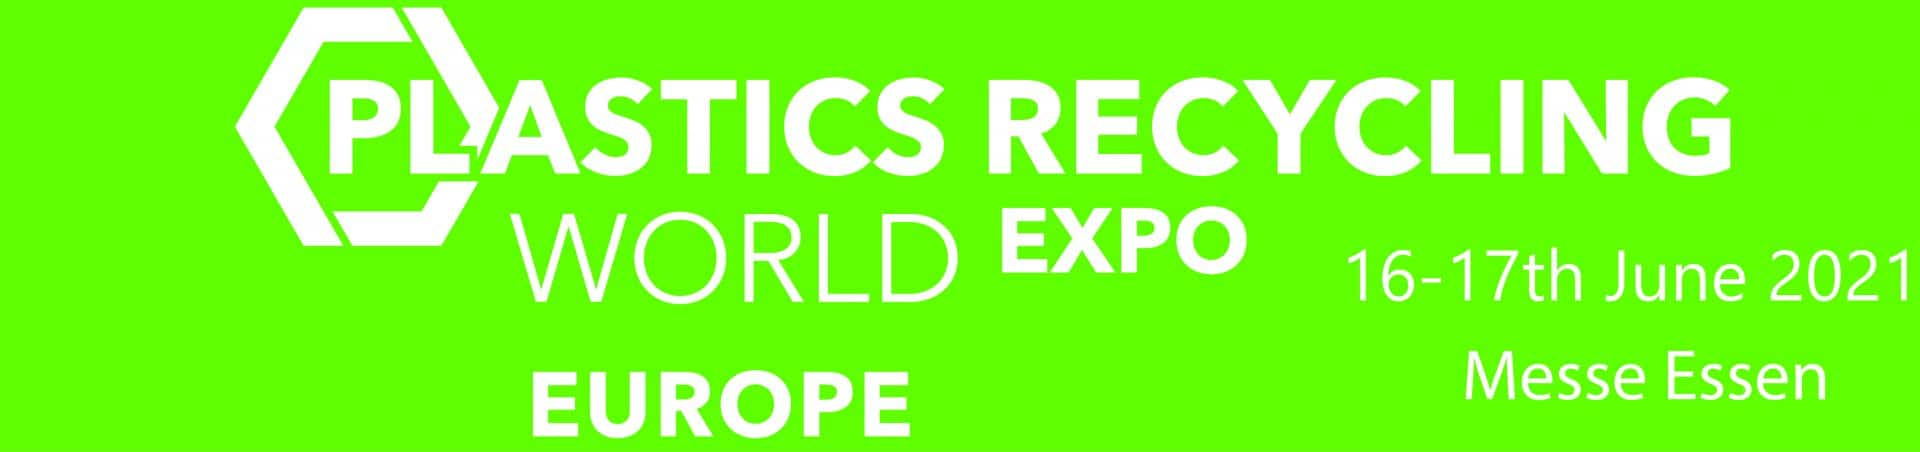 Plastic recycling expo